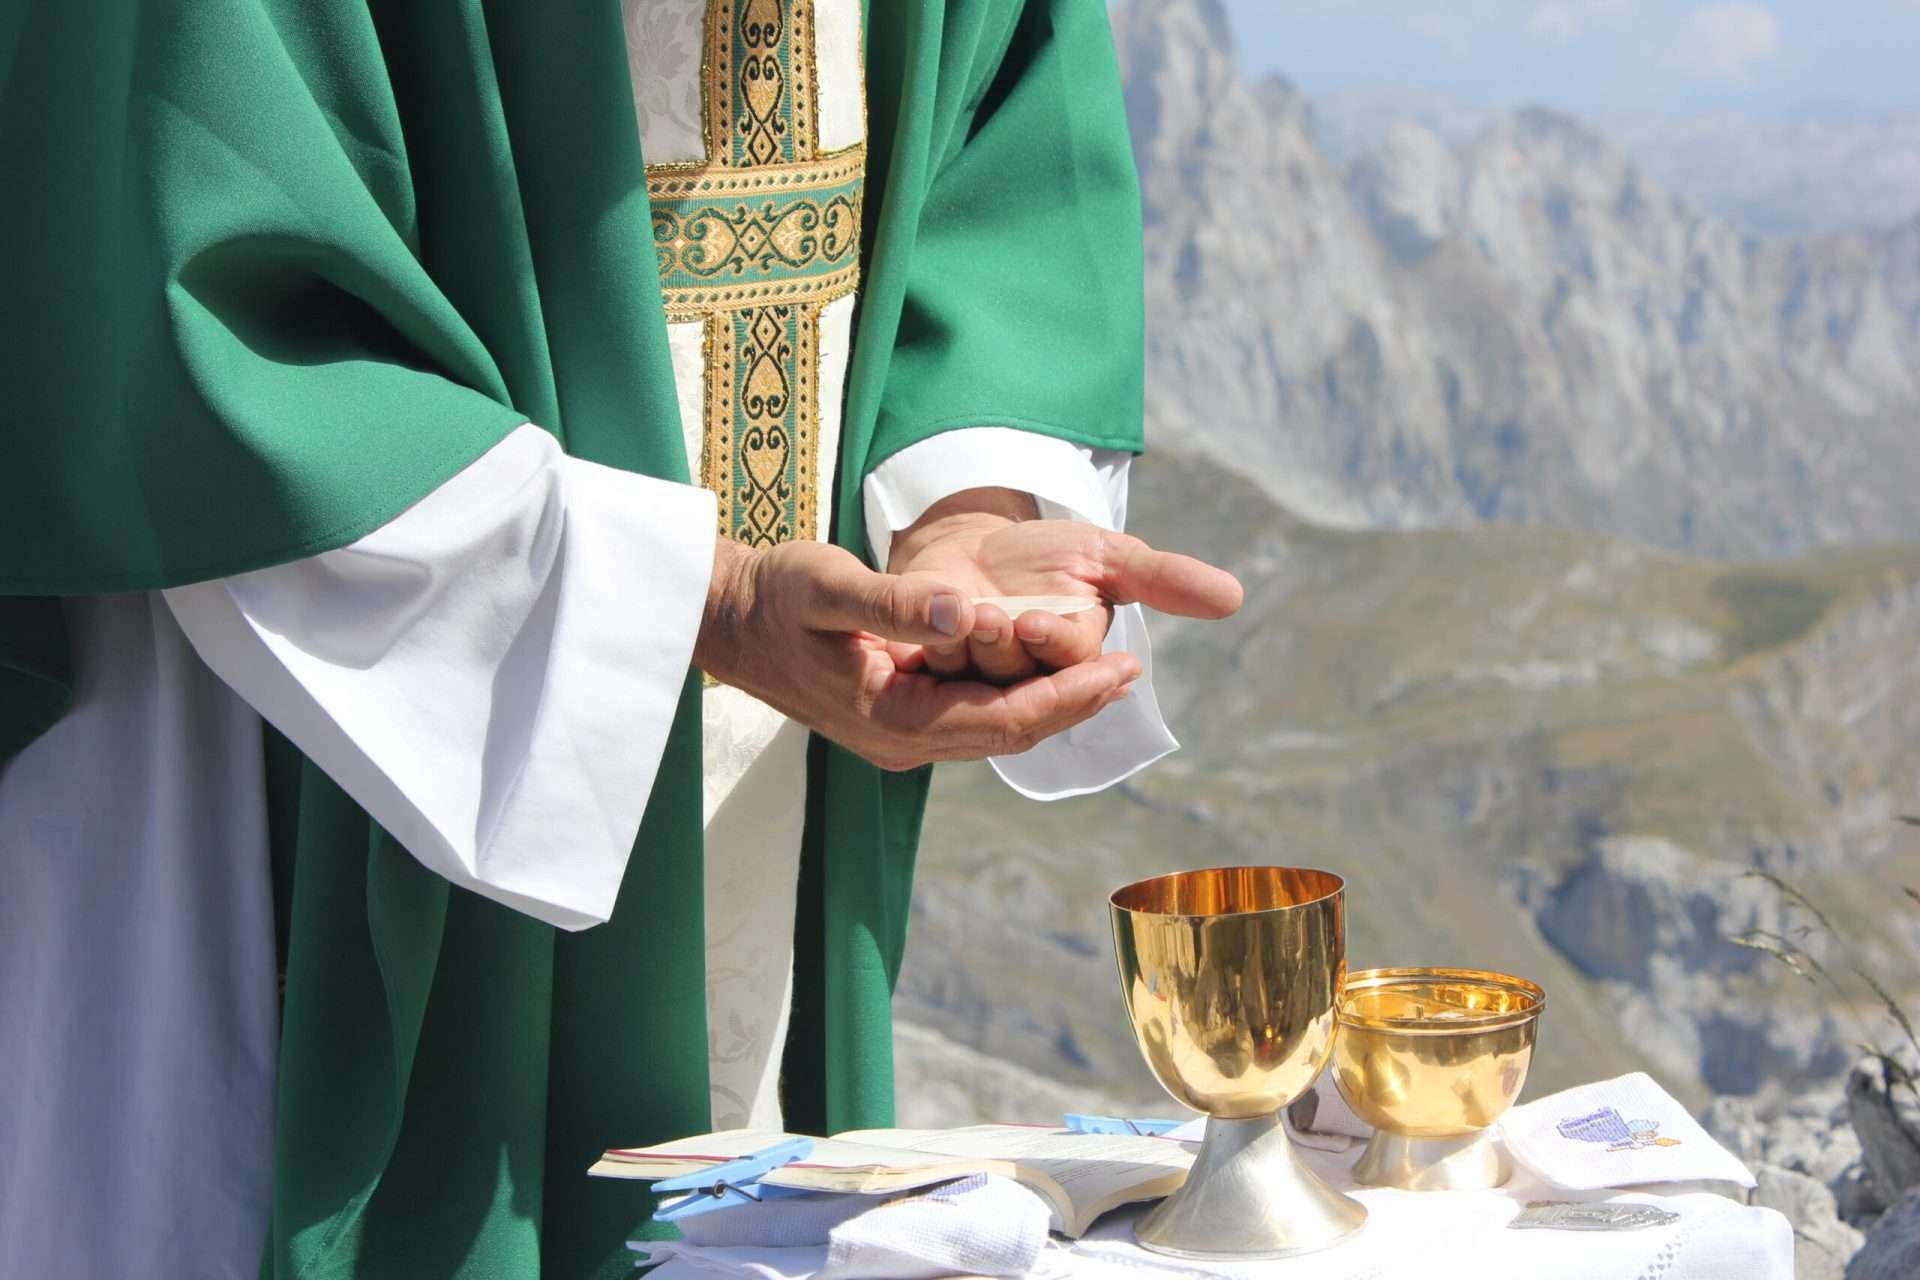 4 Things You Need To Know About 'Offering A Mass' For A Loved One